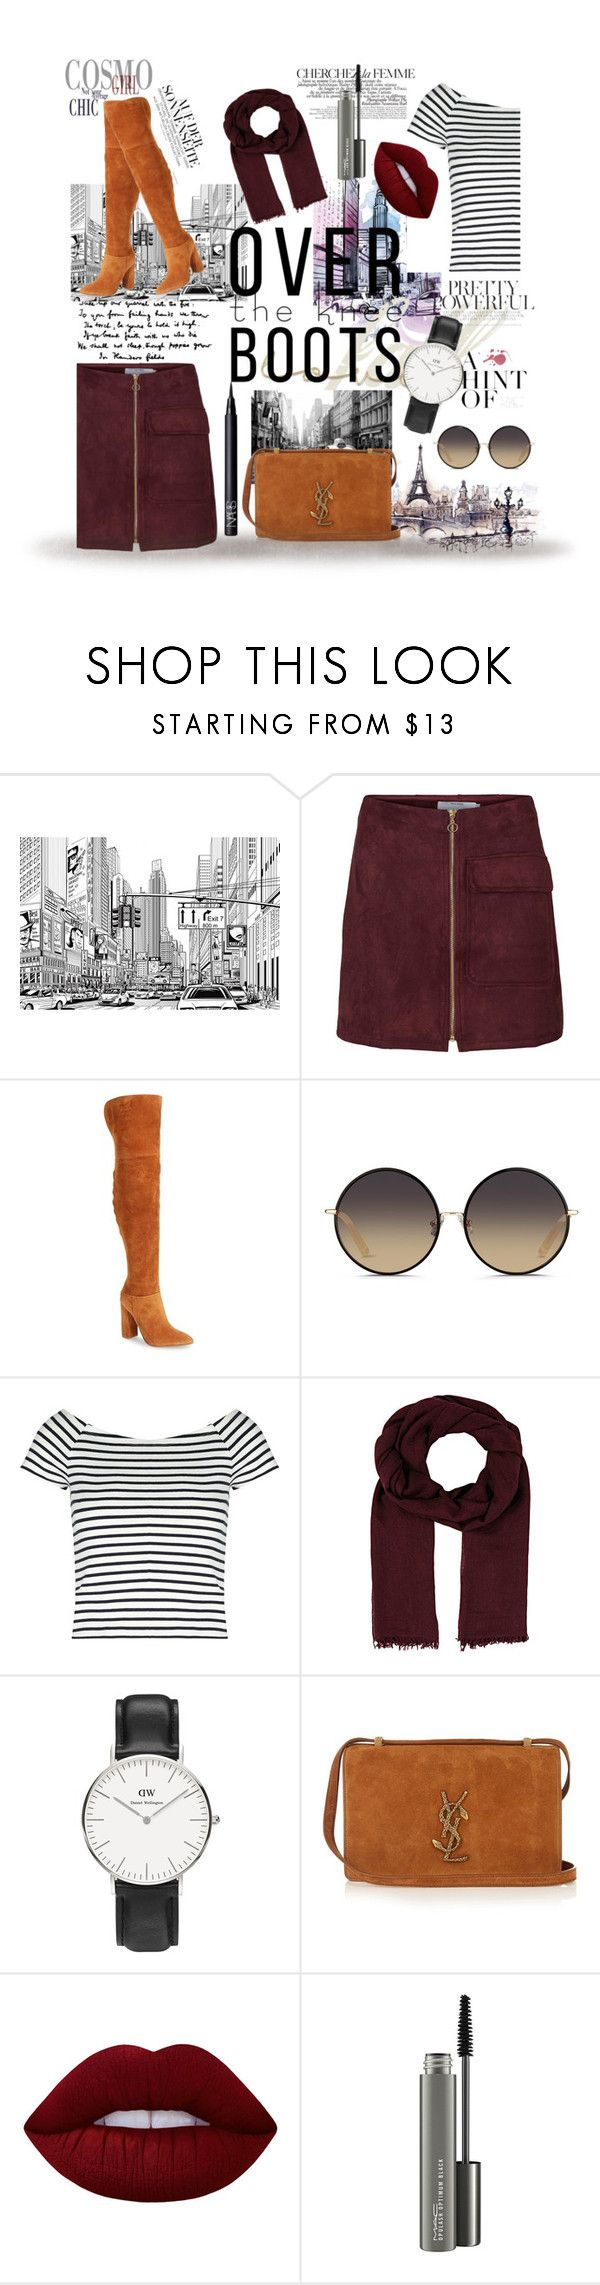 """brown boots"" by pasteldemerme ❤ liked on Polyvore featuring La Femme, Marc Fisher LTD, Matthew Williamson, Lipsy, Faliero Sarti, Daniel Wellington, Yves Saint Laurent, Lime Crime, MAC Cosmetics and NARS Cosmetics"